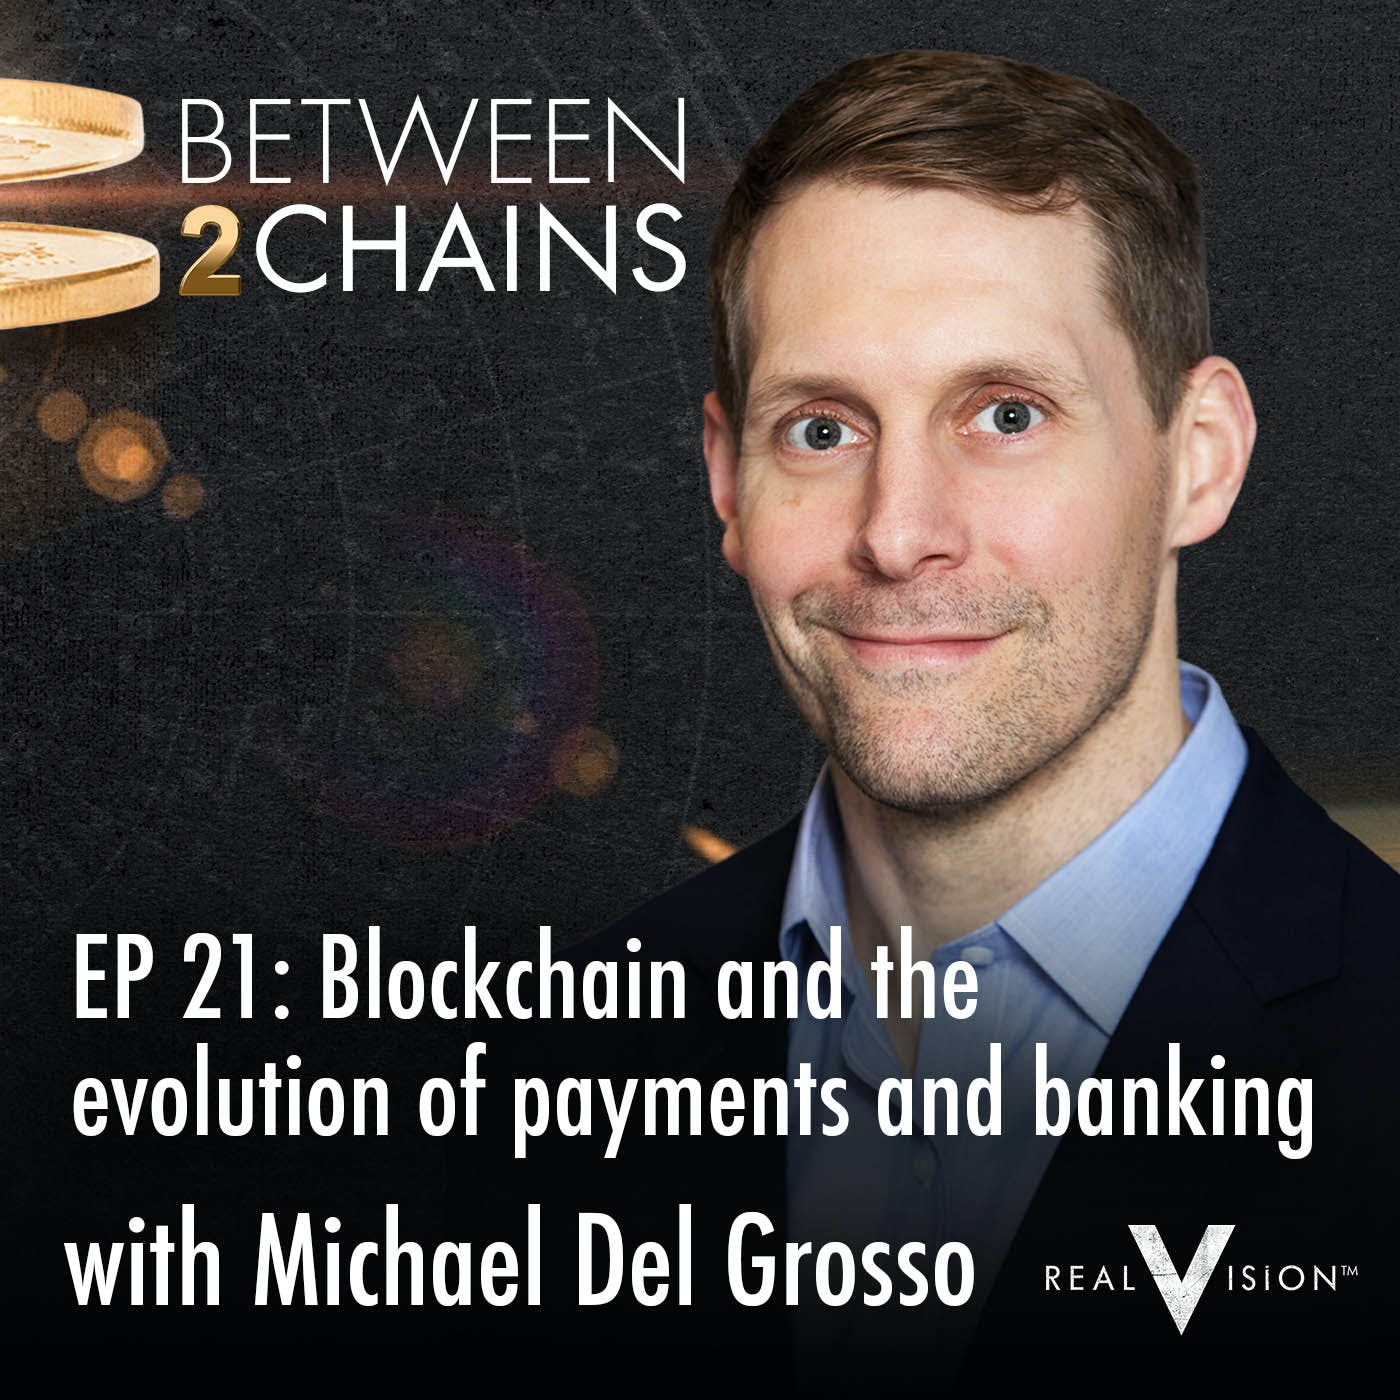 B2C021: Blockchain and the evolution of payments and banking ( w/ Michael Del Grosso )